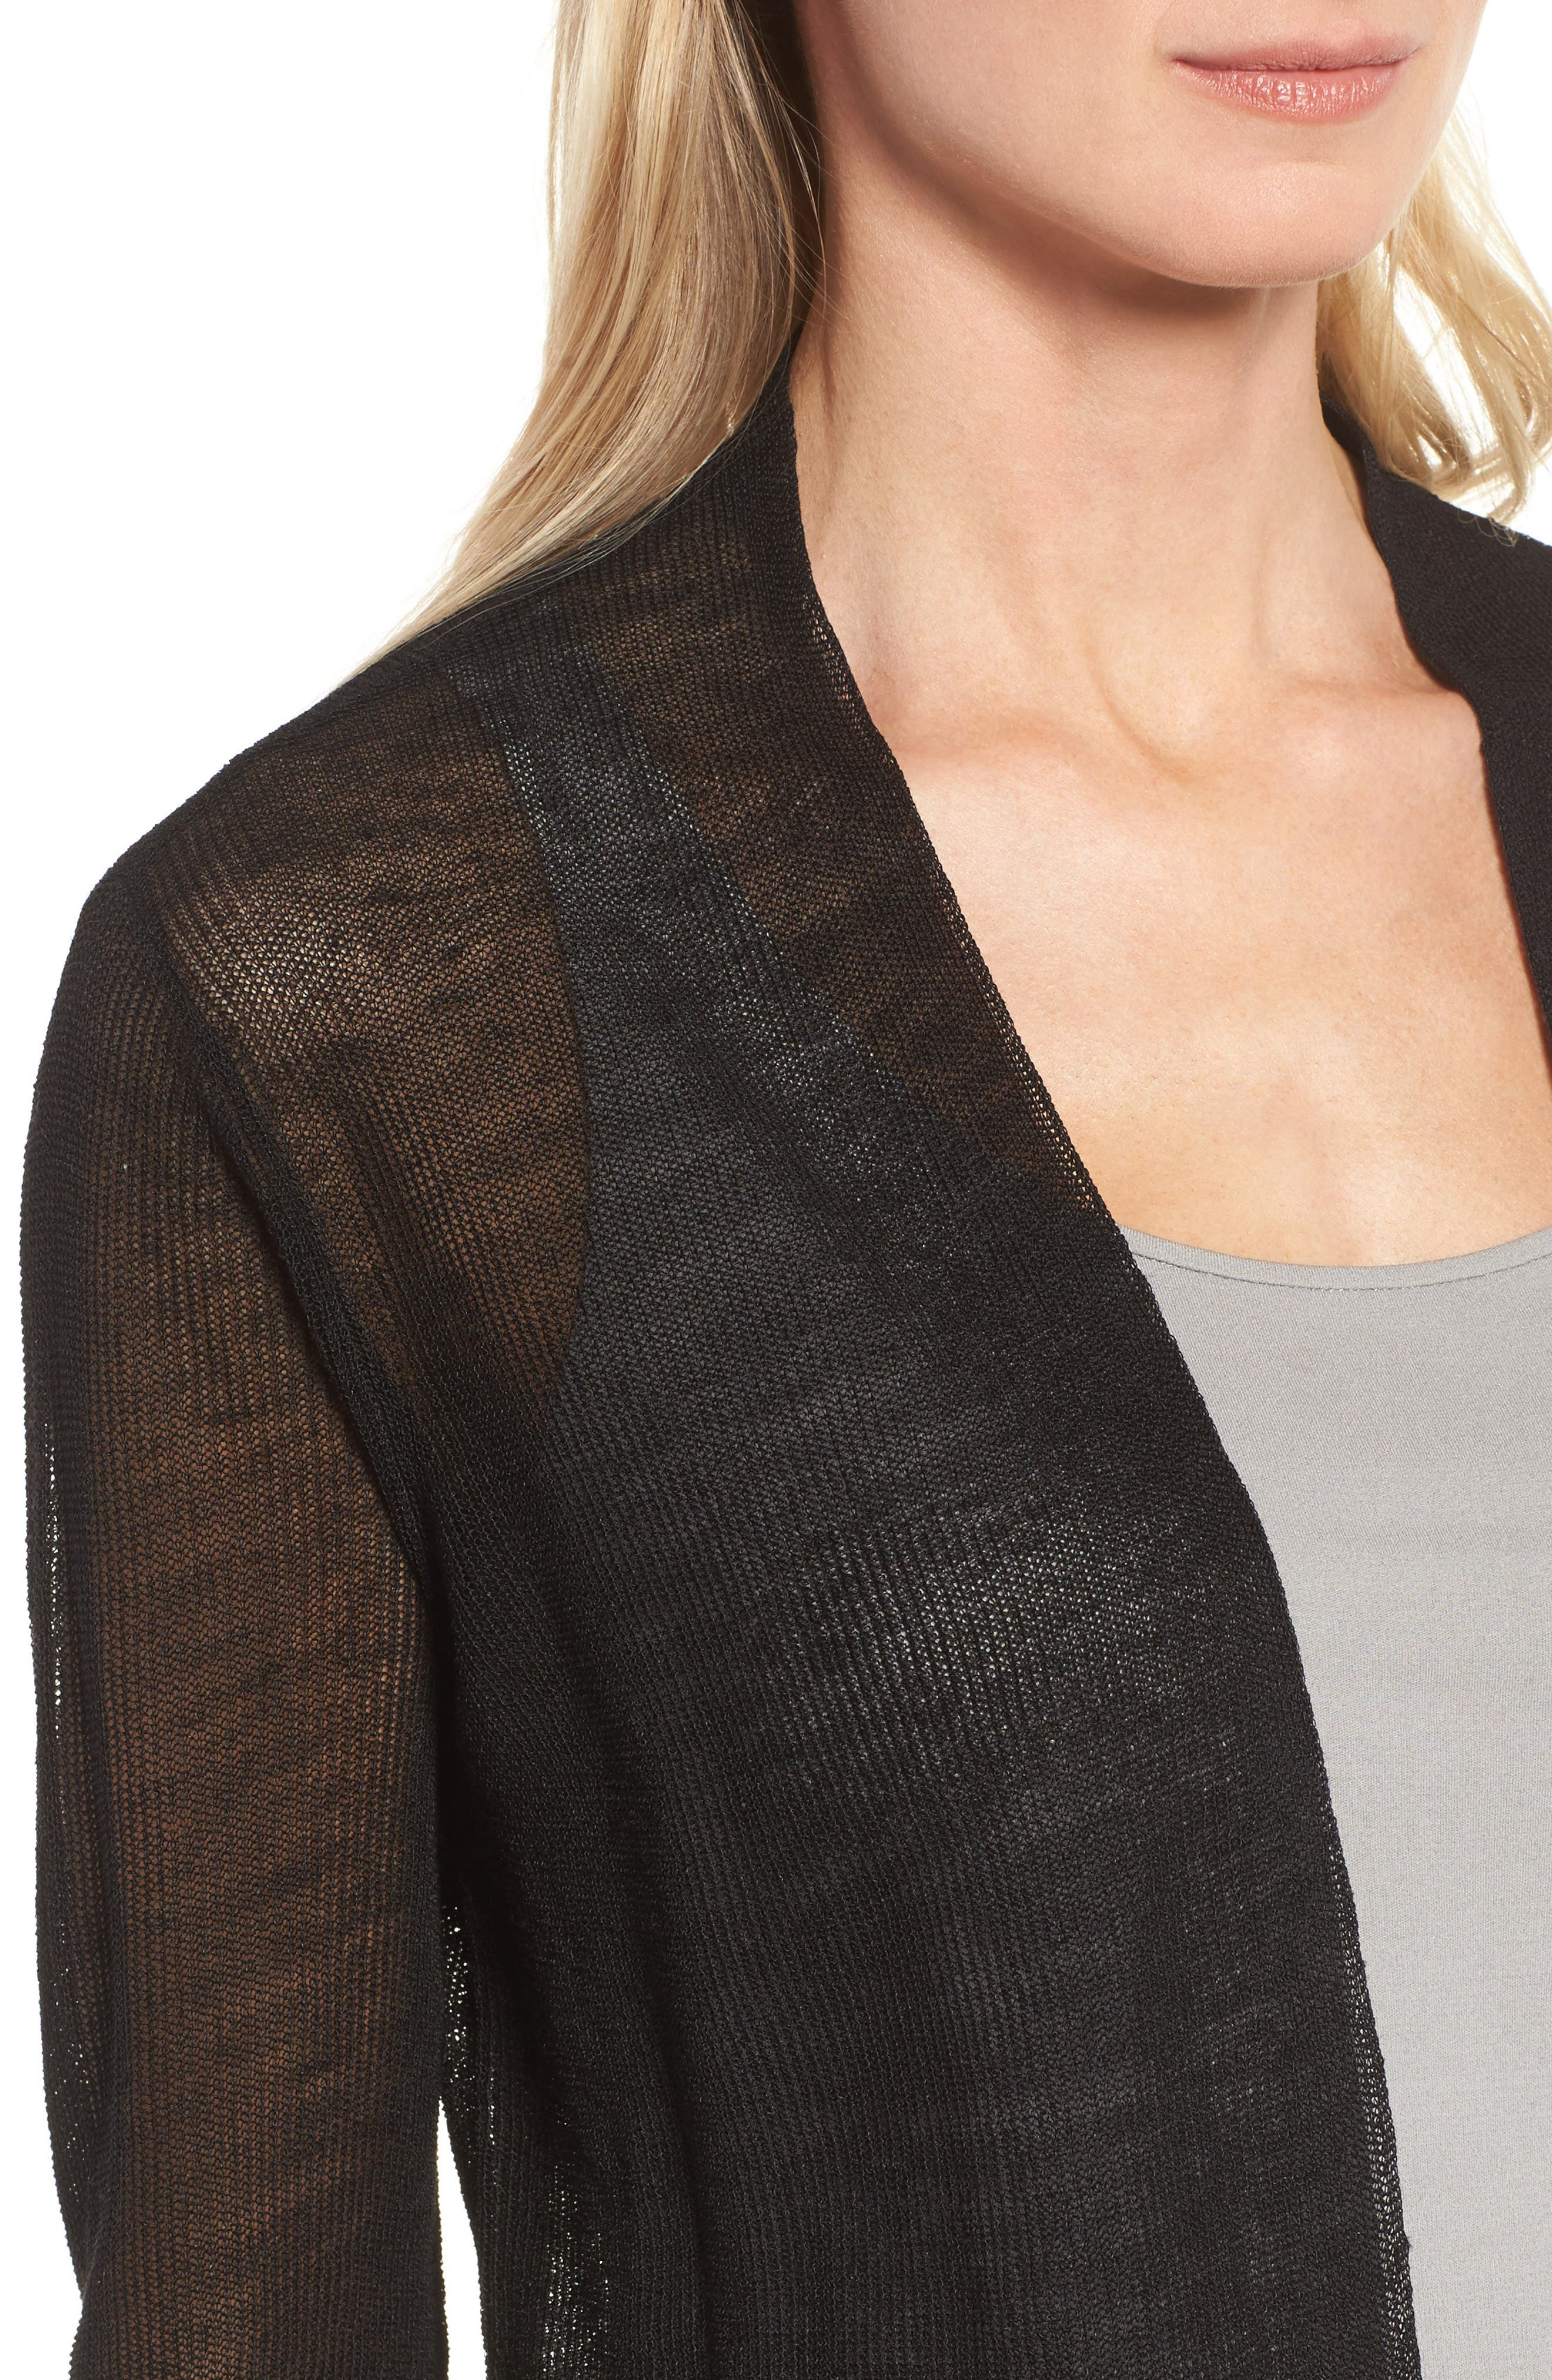 Organic Linen Blend Crop Cardigan,                             Alternate thumbnail 4, color,                             Black